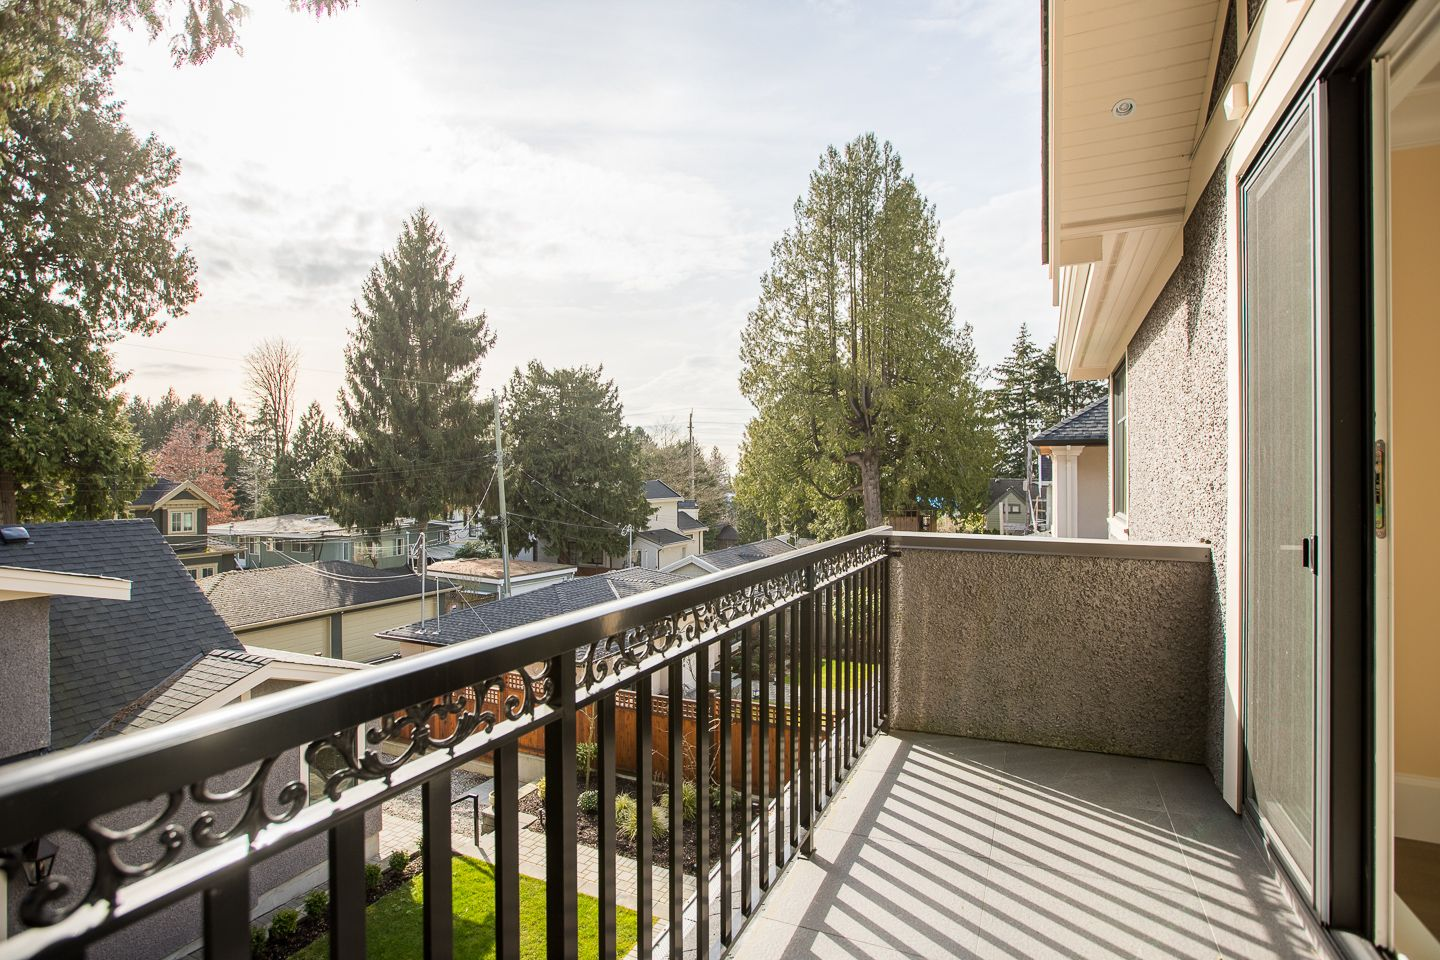 Photo 26: Photos: 1744 WEST 61ST AVE in VANCOUVER: South Granville House for sale (Vancouver West)  : MLS®# R2546980